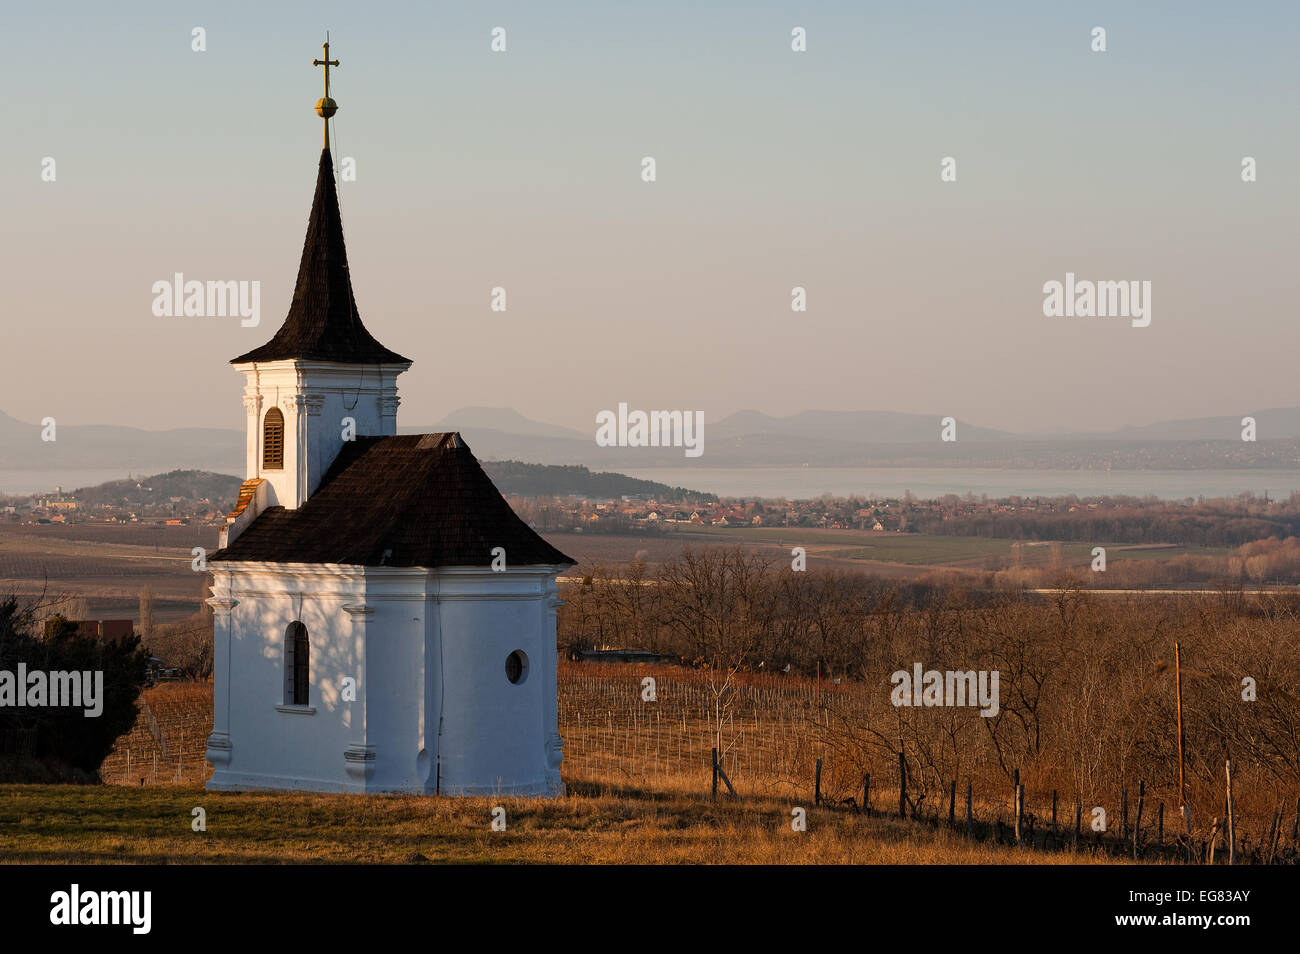 Small chapell at a wineyard with the lake of Balaton on background - Stock Image